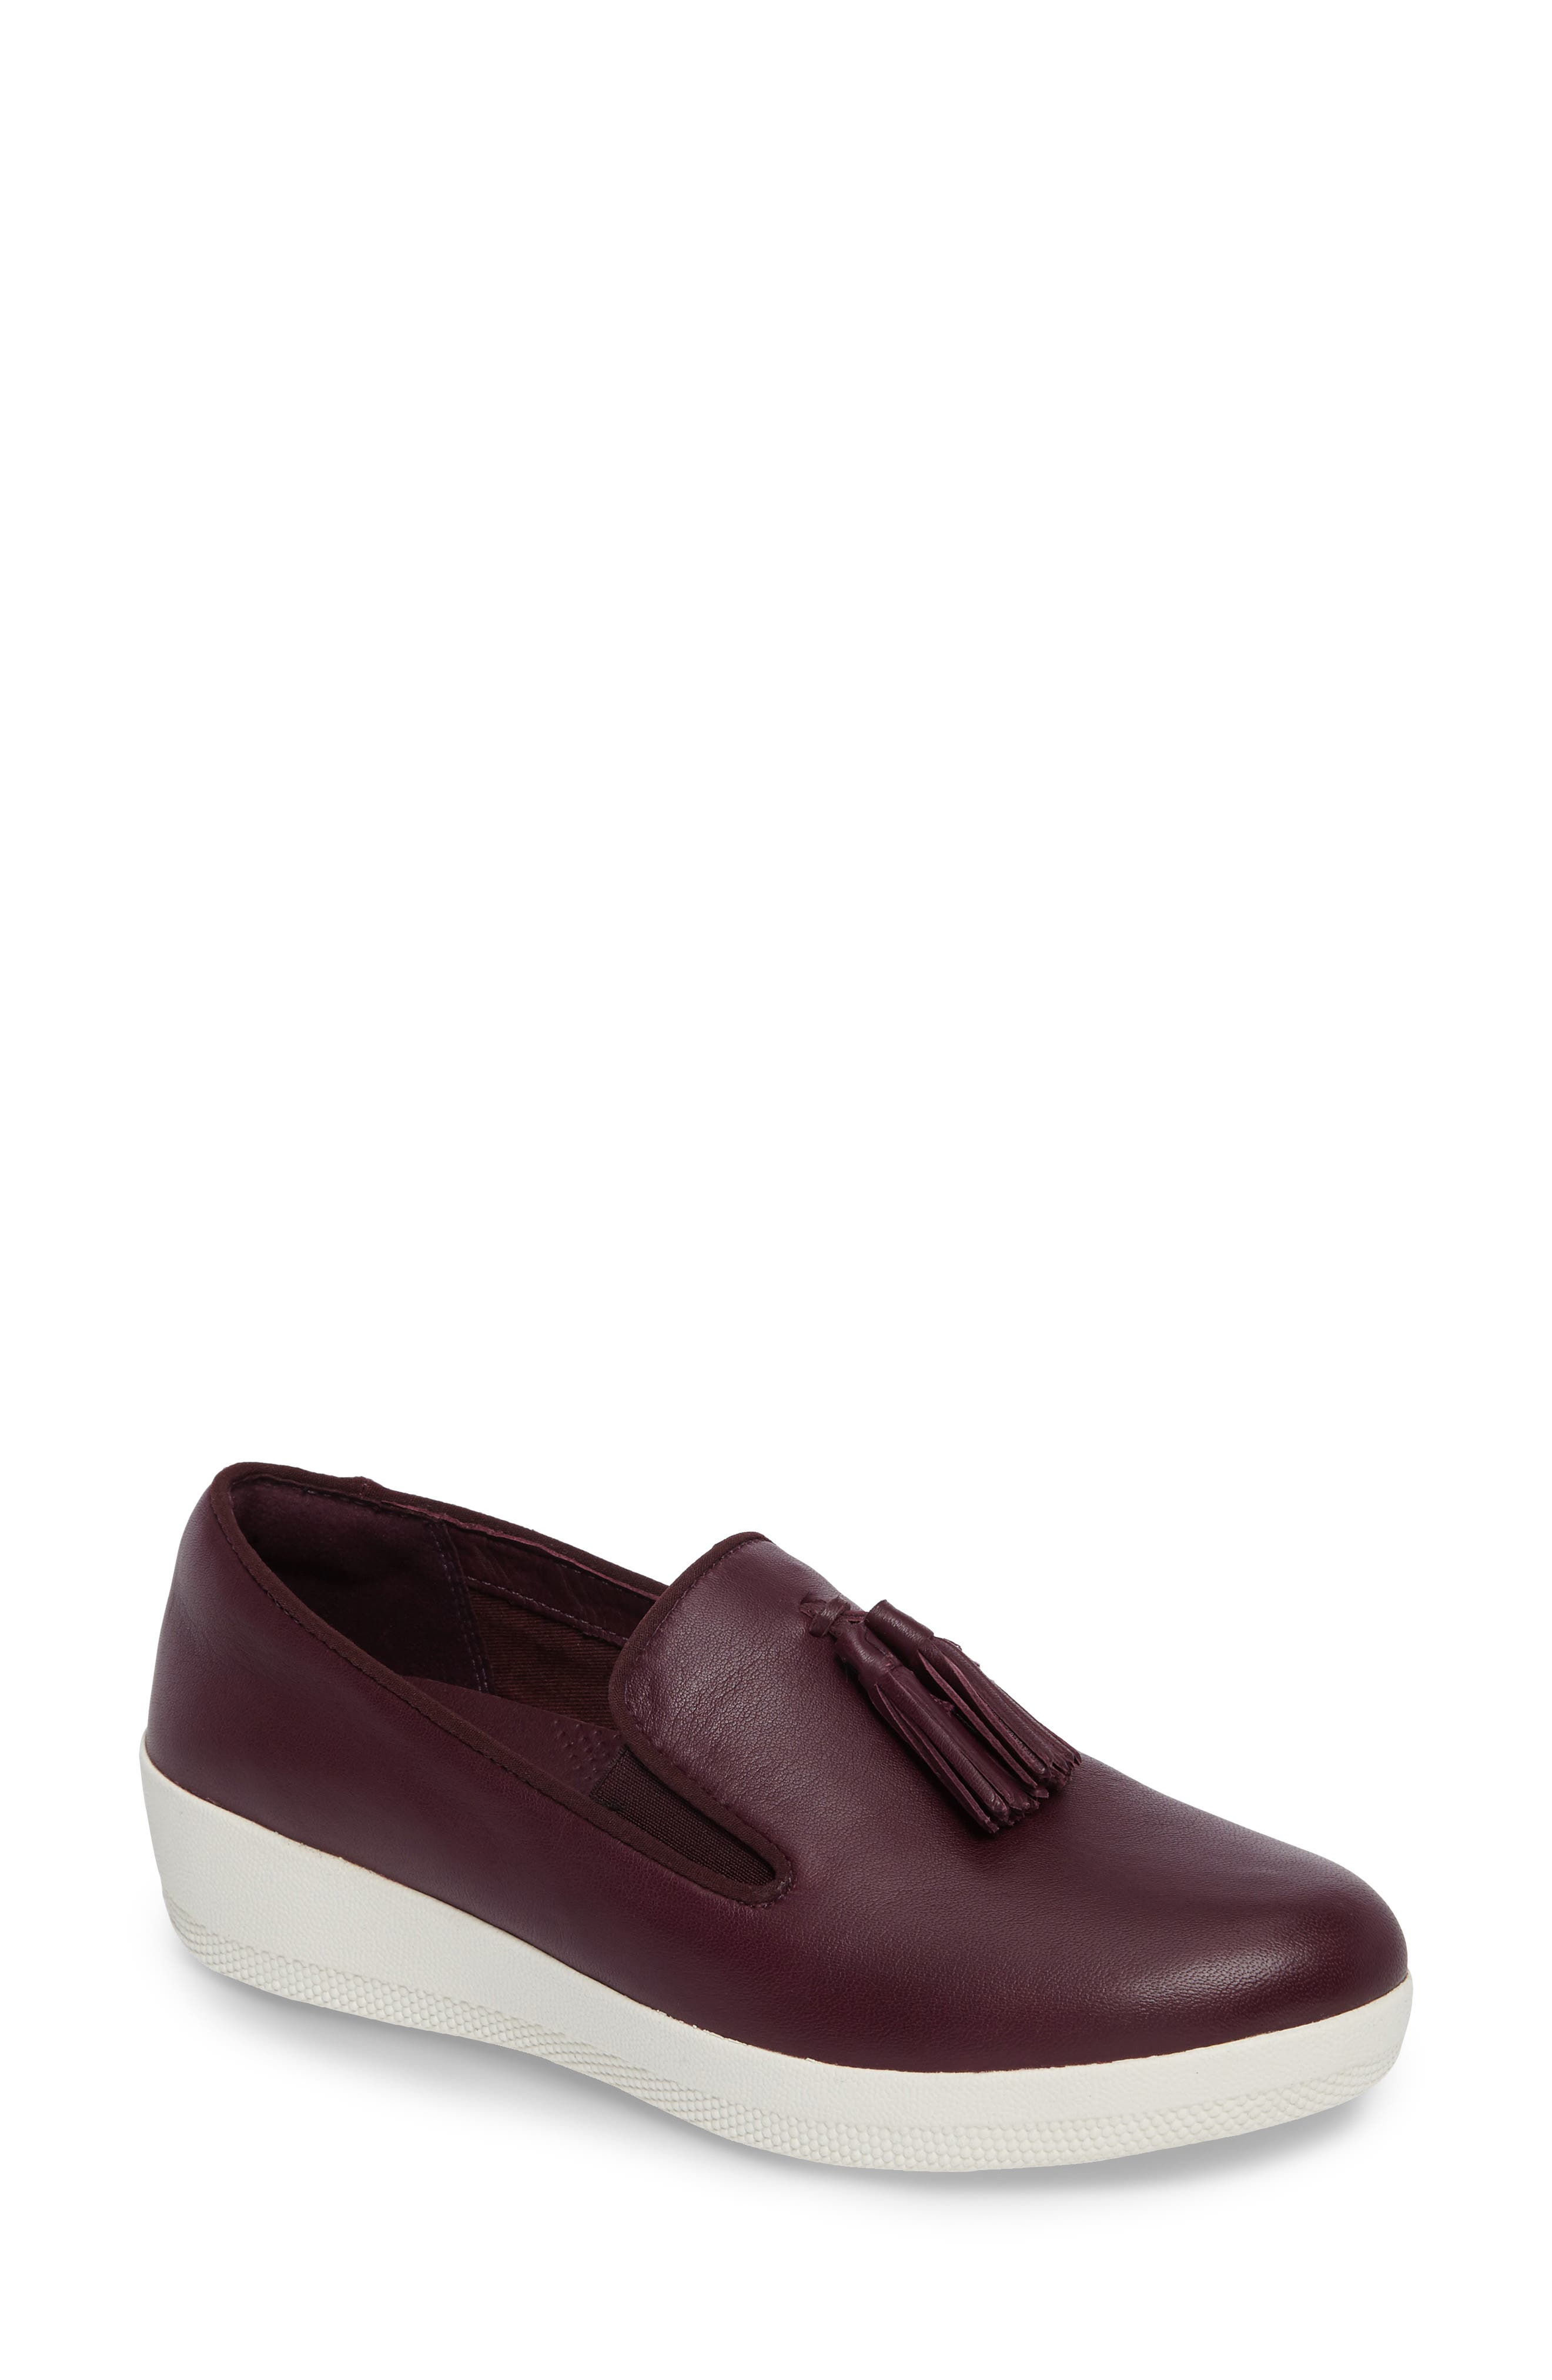 Tassle Superskate Wedge Sneaker,                         Main,                         color, Deep Plum Leather